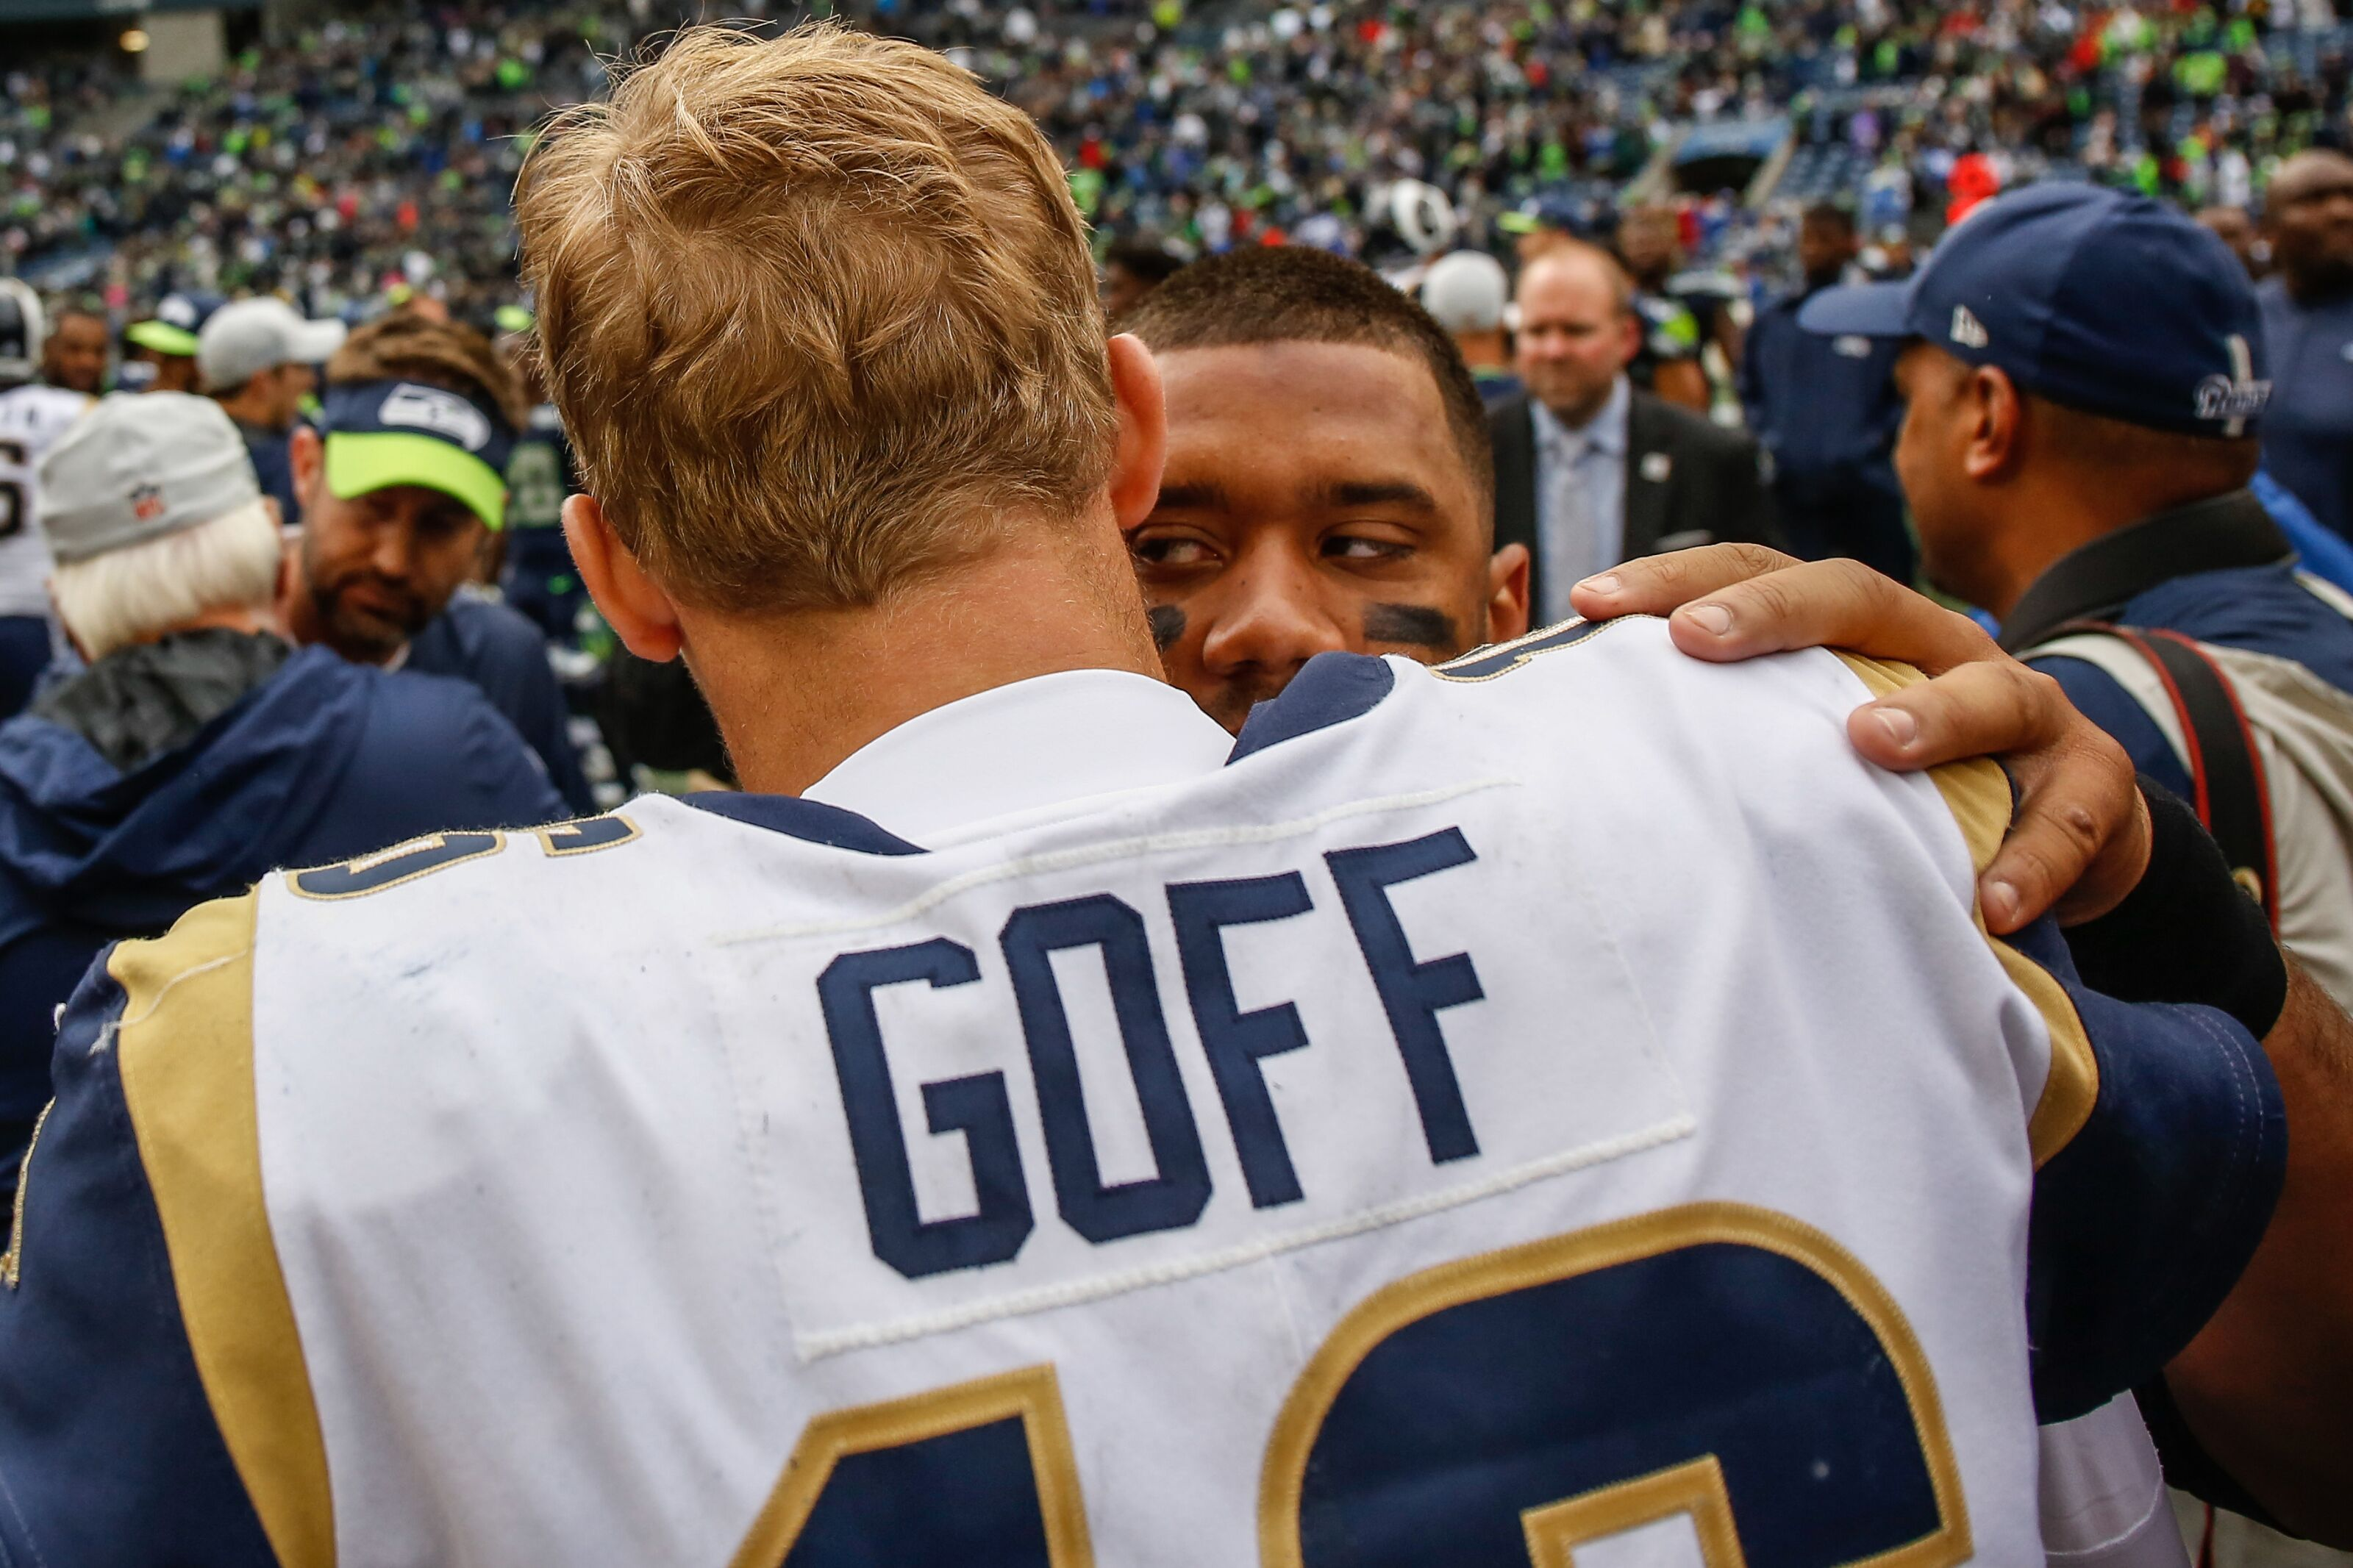 Los Angeles Rams: Jared Goff finishes behind Russell Wilson in NFC West grades from PFF